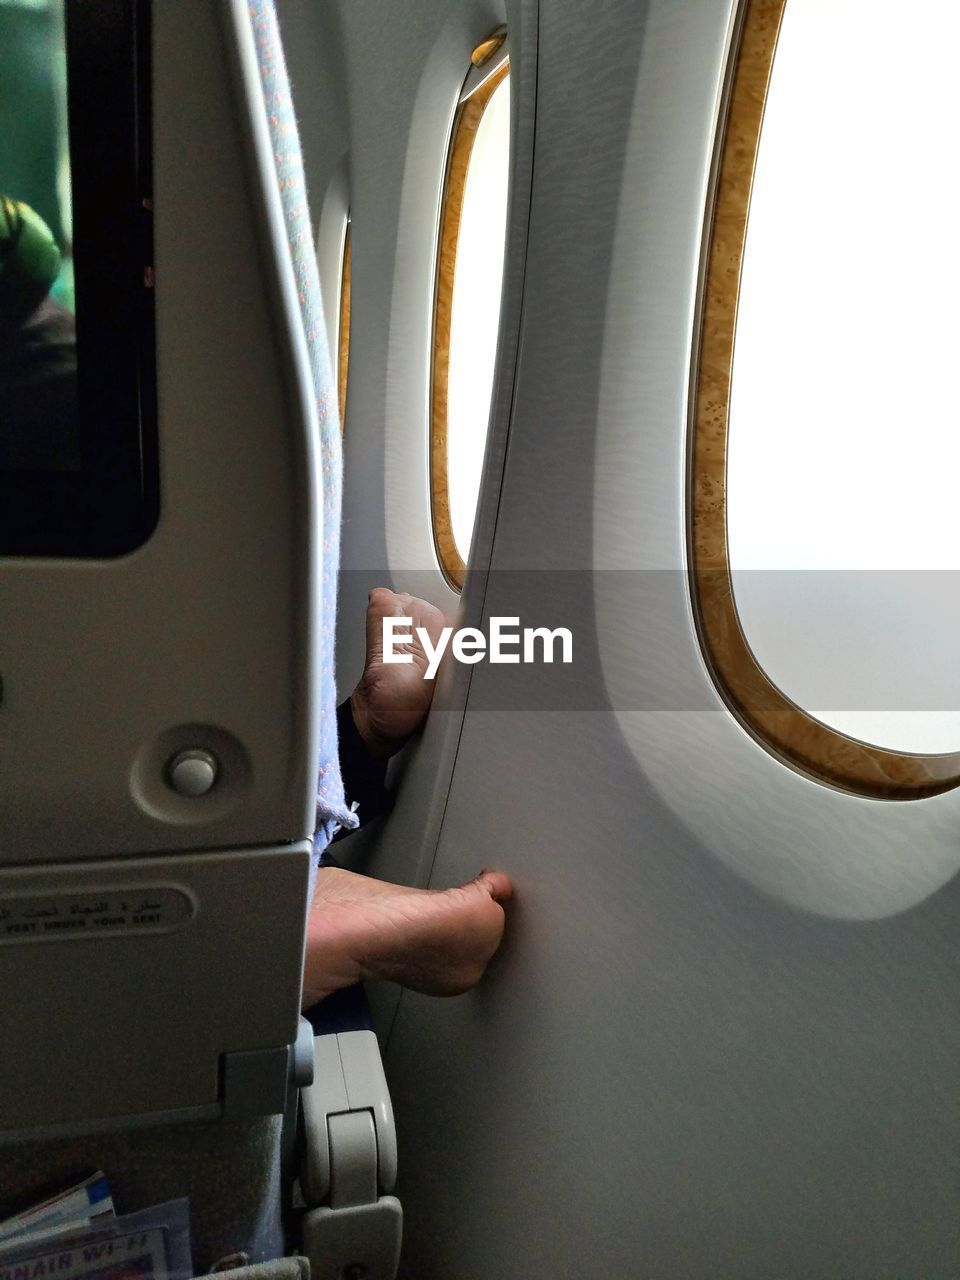 air vehicle, airplane, transportation, mode of transportation, vehicle interior, travel, public transportation, window, journey, flying, real people, human hand, seat, one person, men, human body part, vehicle seat, hand, day, outdoors, finger, aerospace industry, piloting